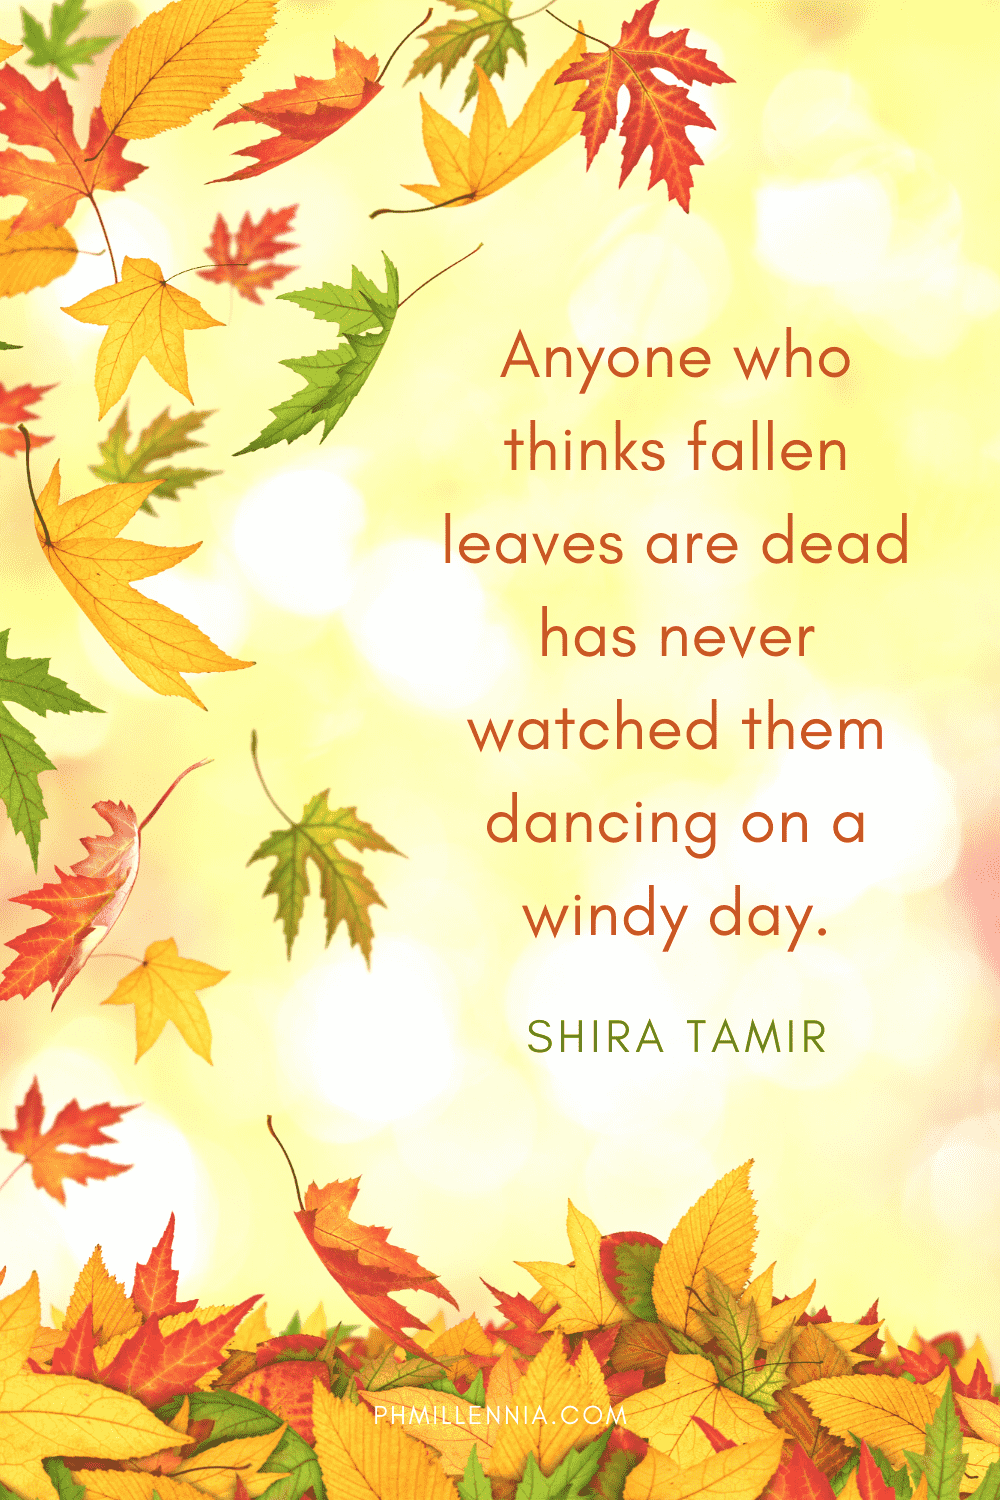 A graphic featuring an autumn quote/fall saying over an image of autumn/fall leaves drifting downwards